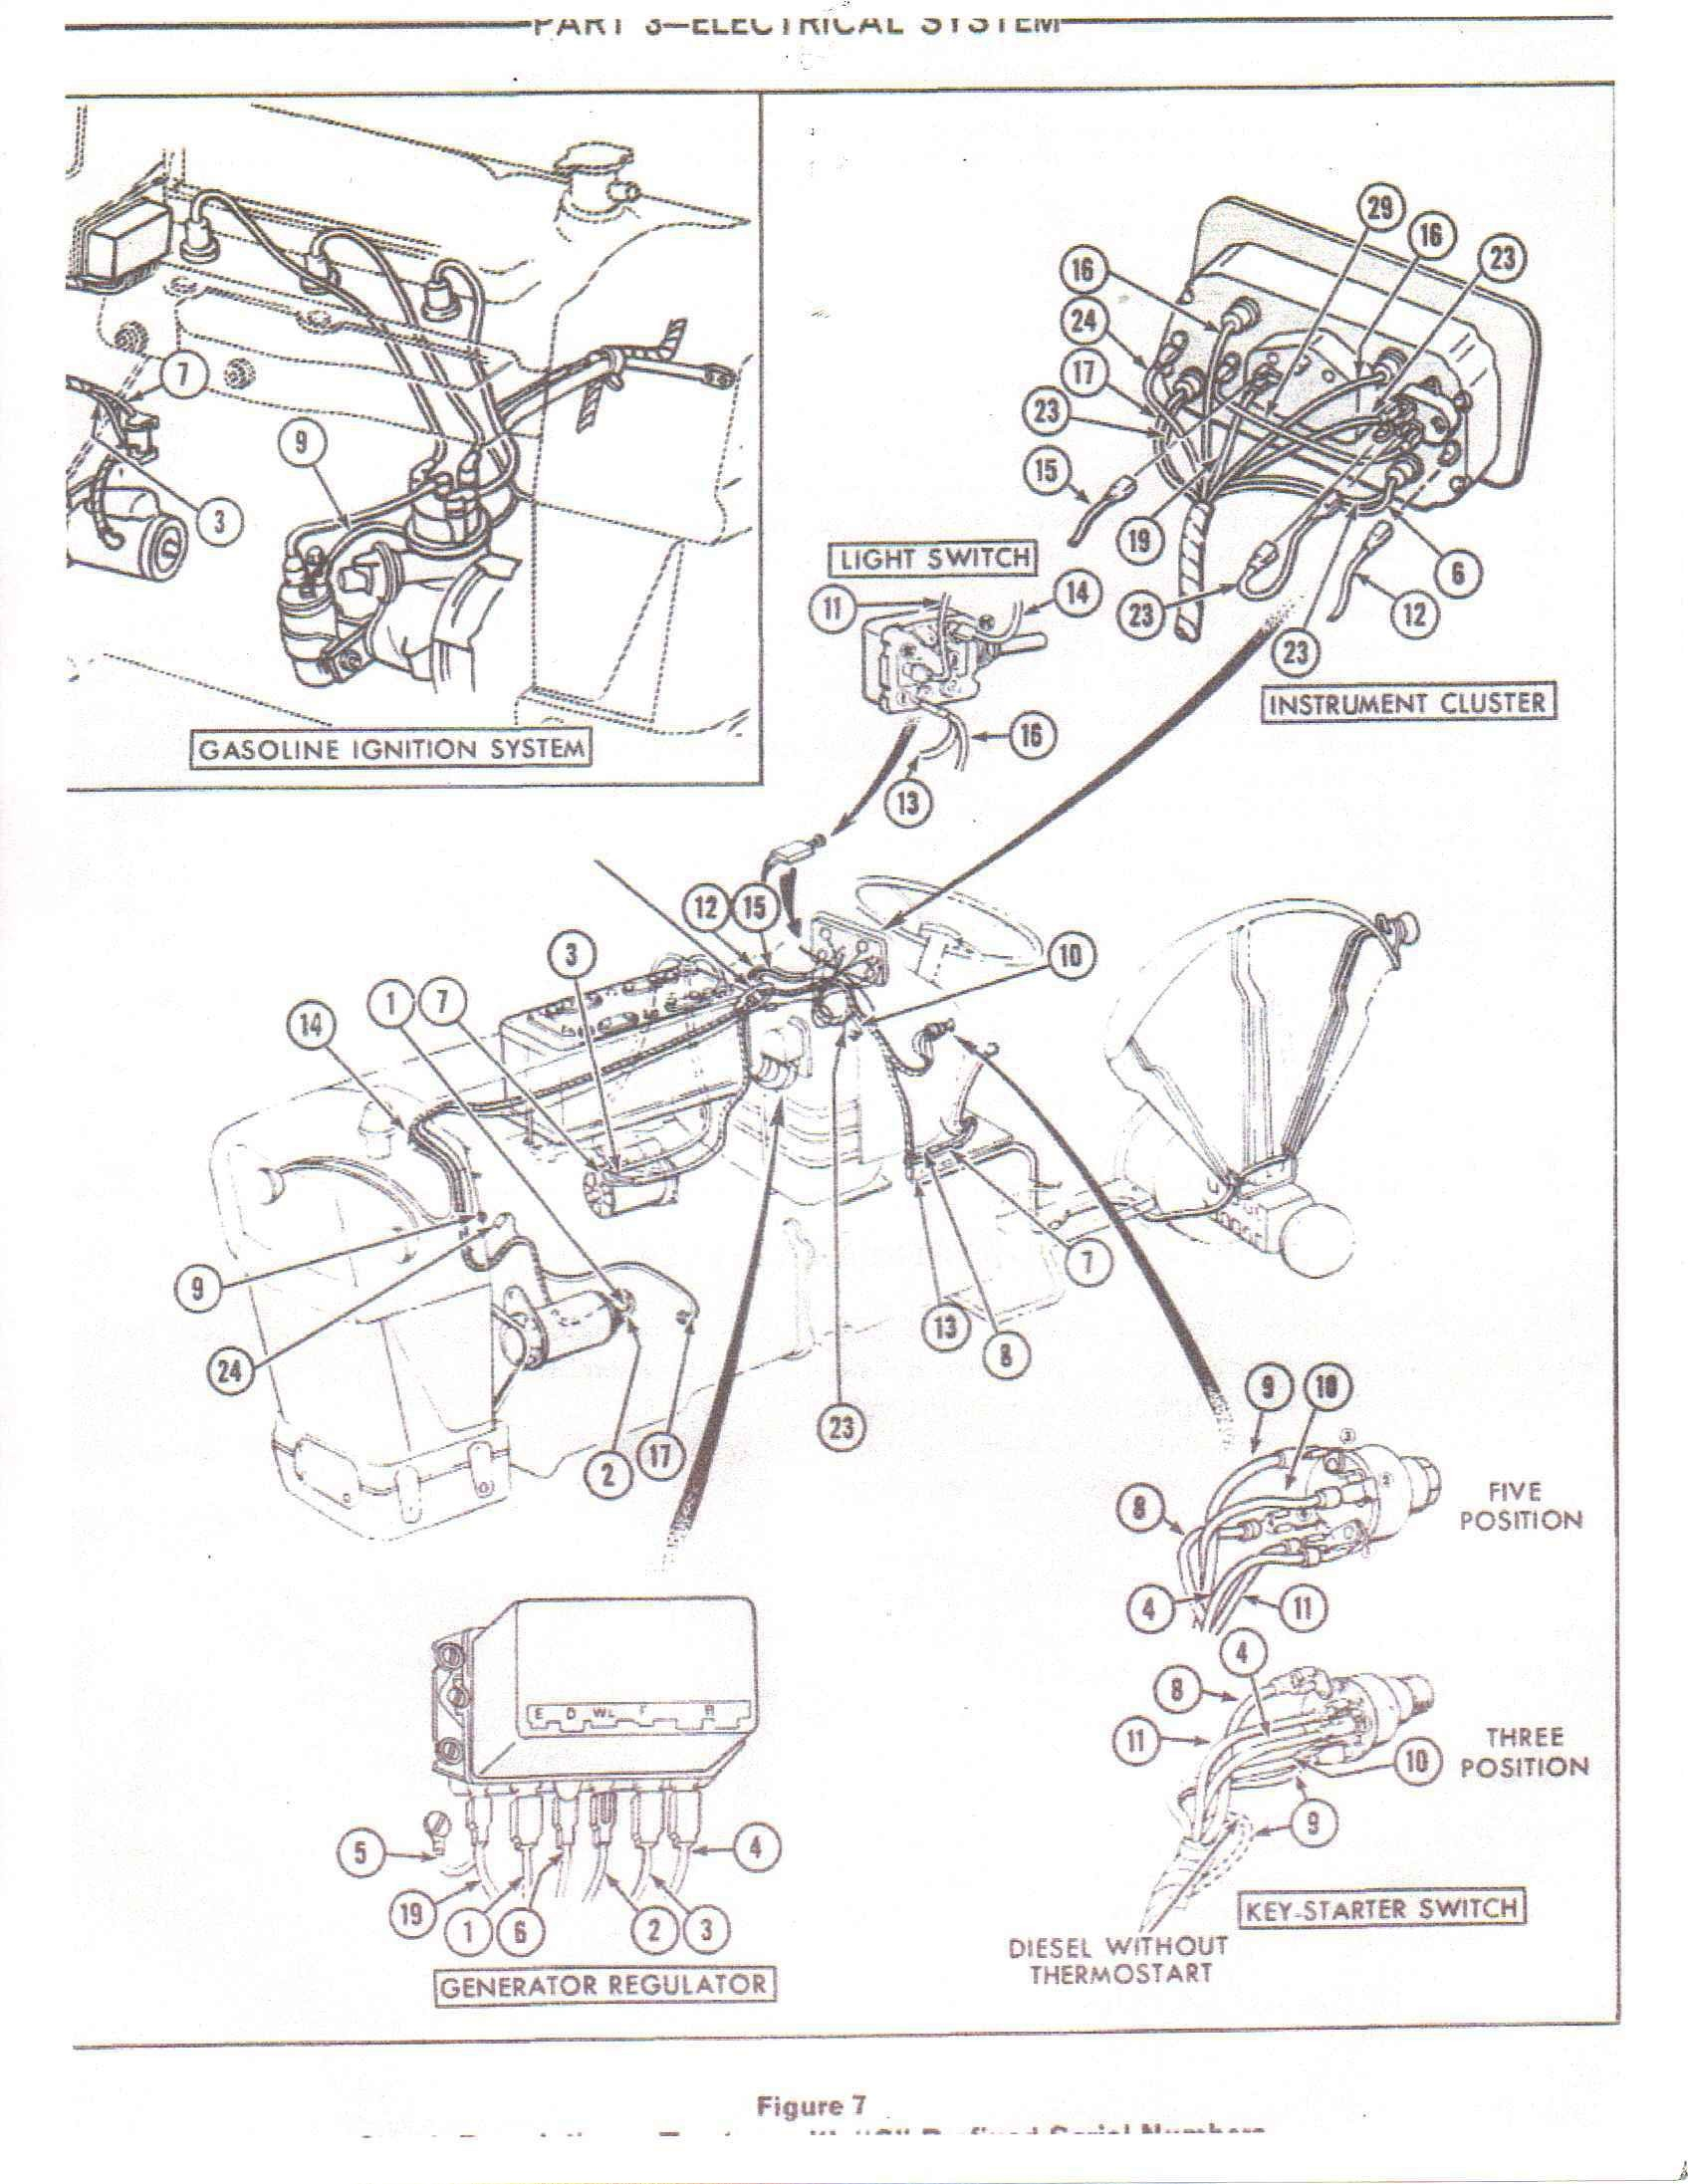 4000 ford tractor alternator wiring u2022 free wiring diagrams rh pcpersia org Ford 600 Tractor Wiring Diagram ford 4600 diesel tractor wiring diagram